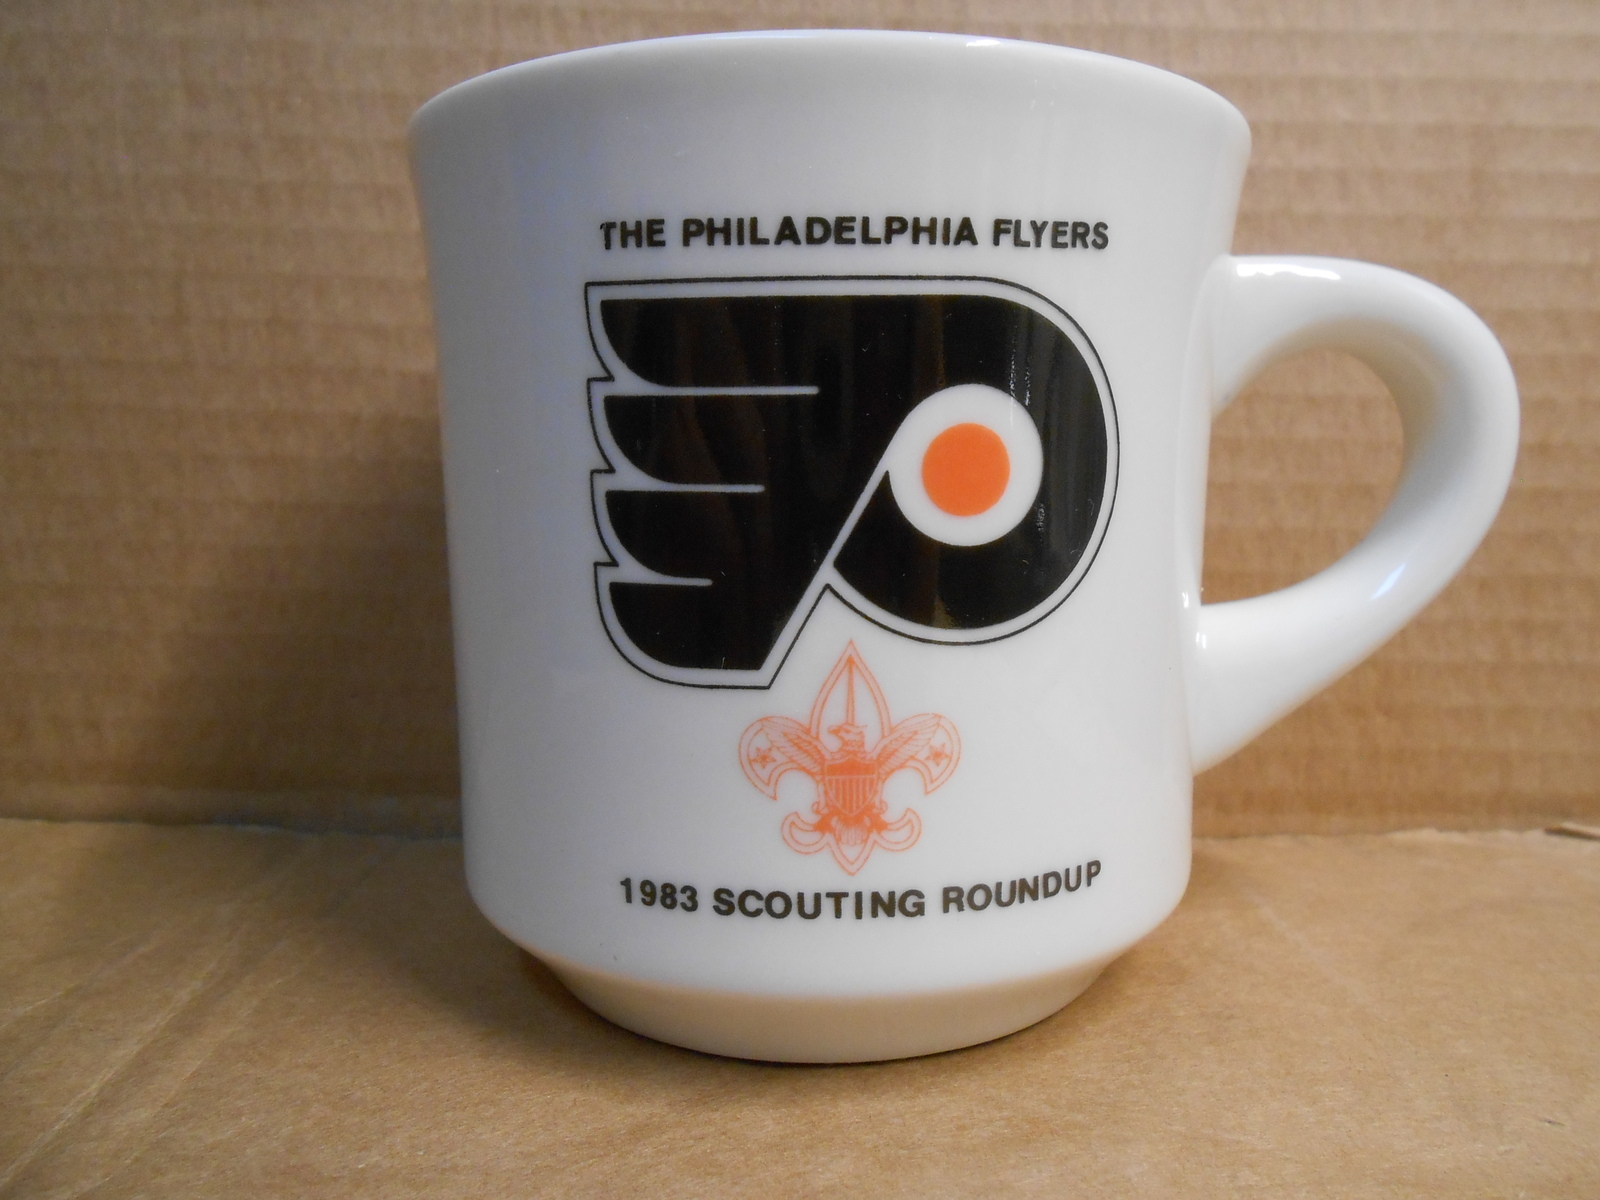 Primary image for THE PHILADELPHIA FLYERS 1983 SCOUTING ROUNDUP CERAMIC MUG B.S.A. NEW MINT SM14